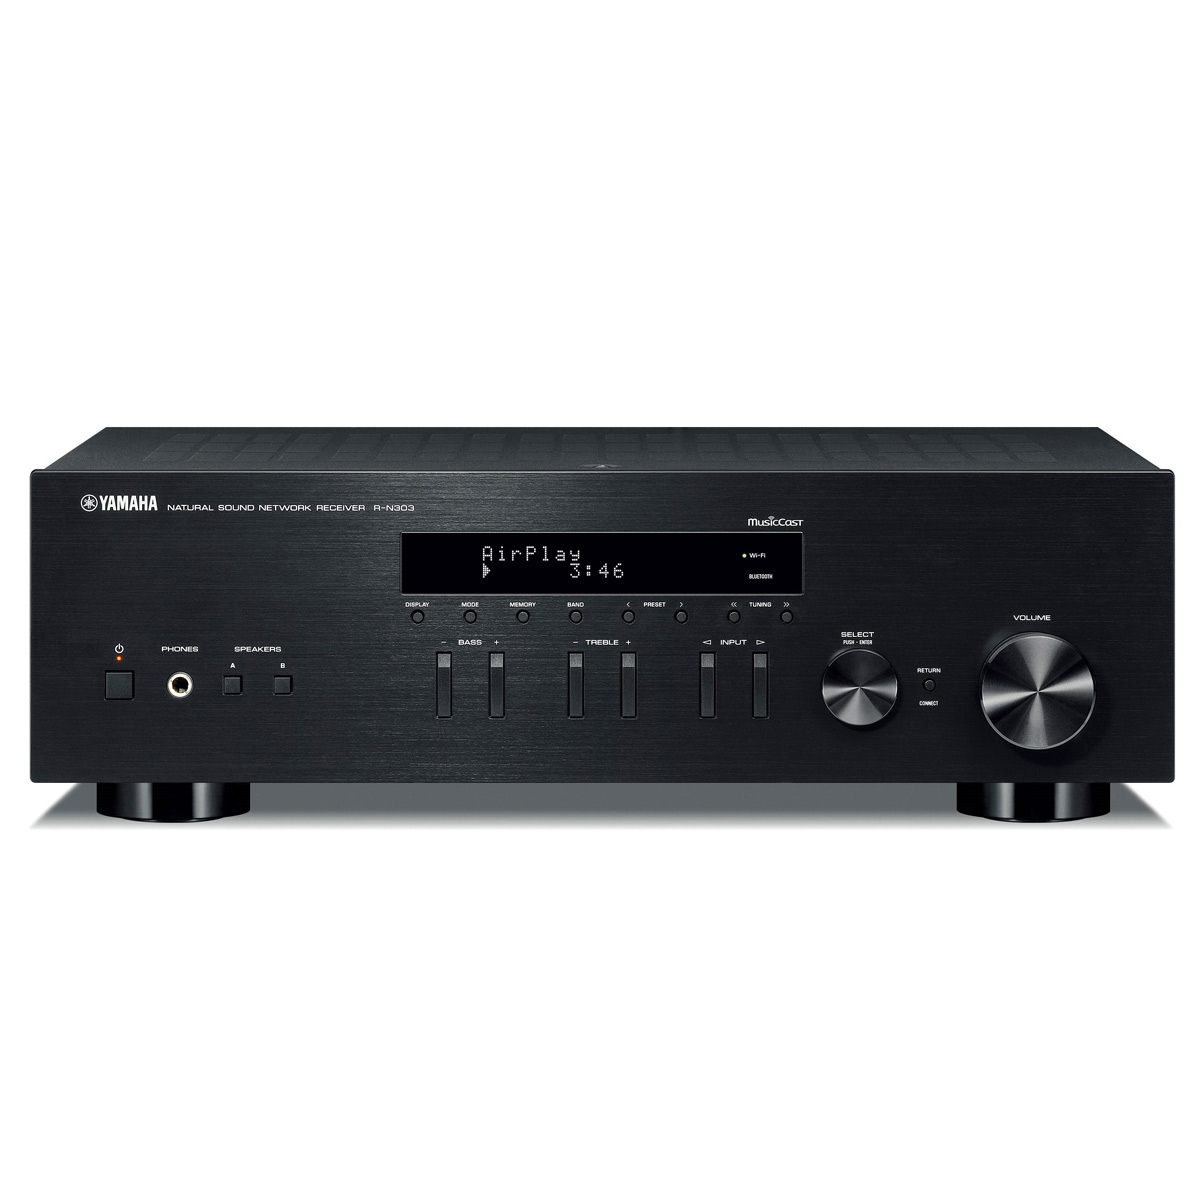 Yamaha r n303 network stereo receiver with musiccast for Yamaha multi zone receiver